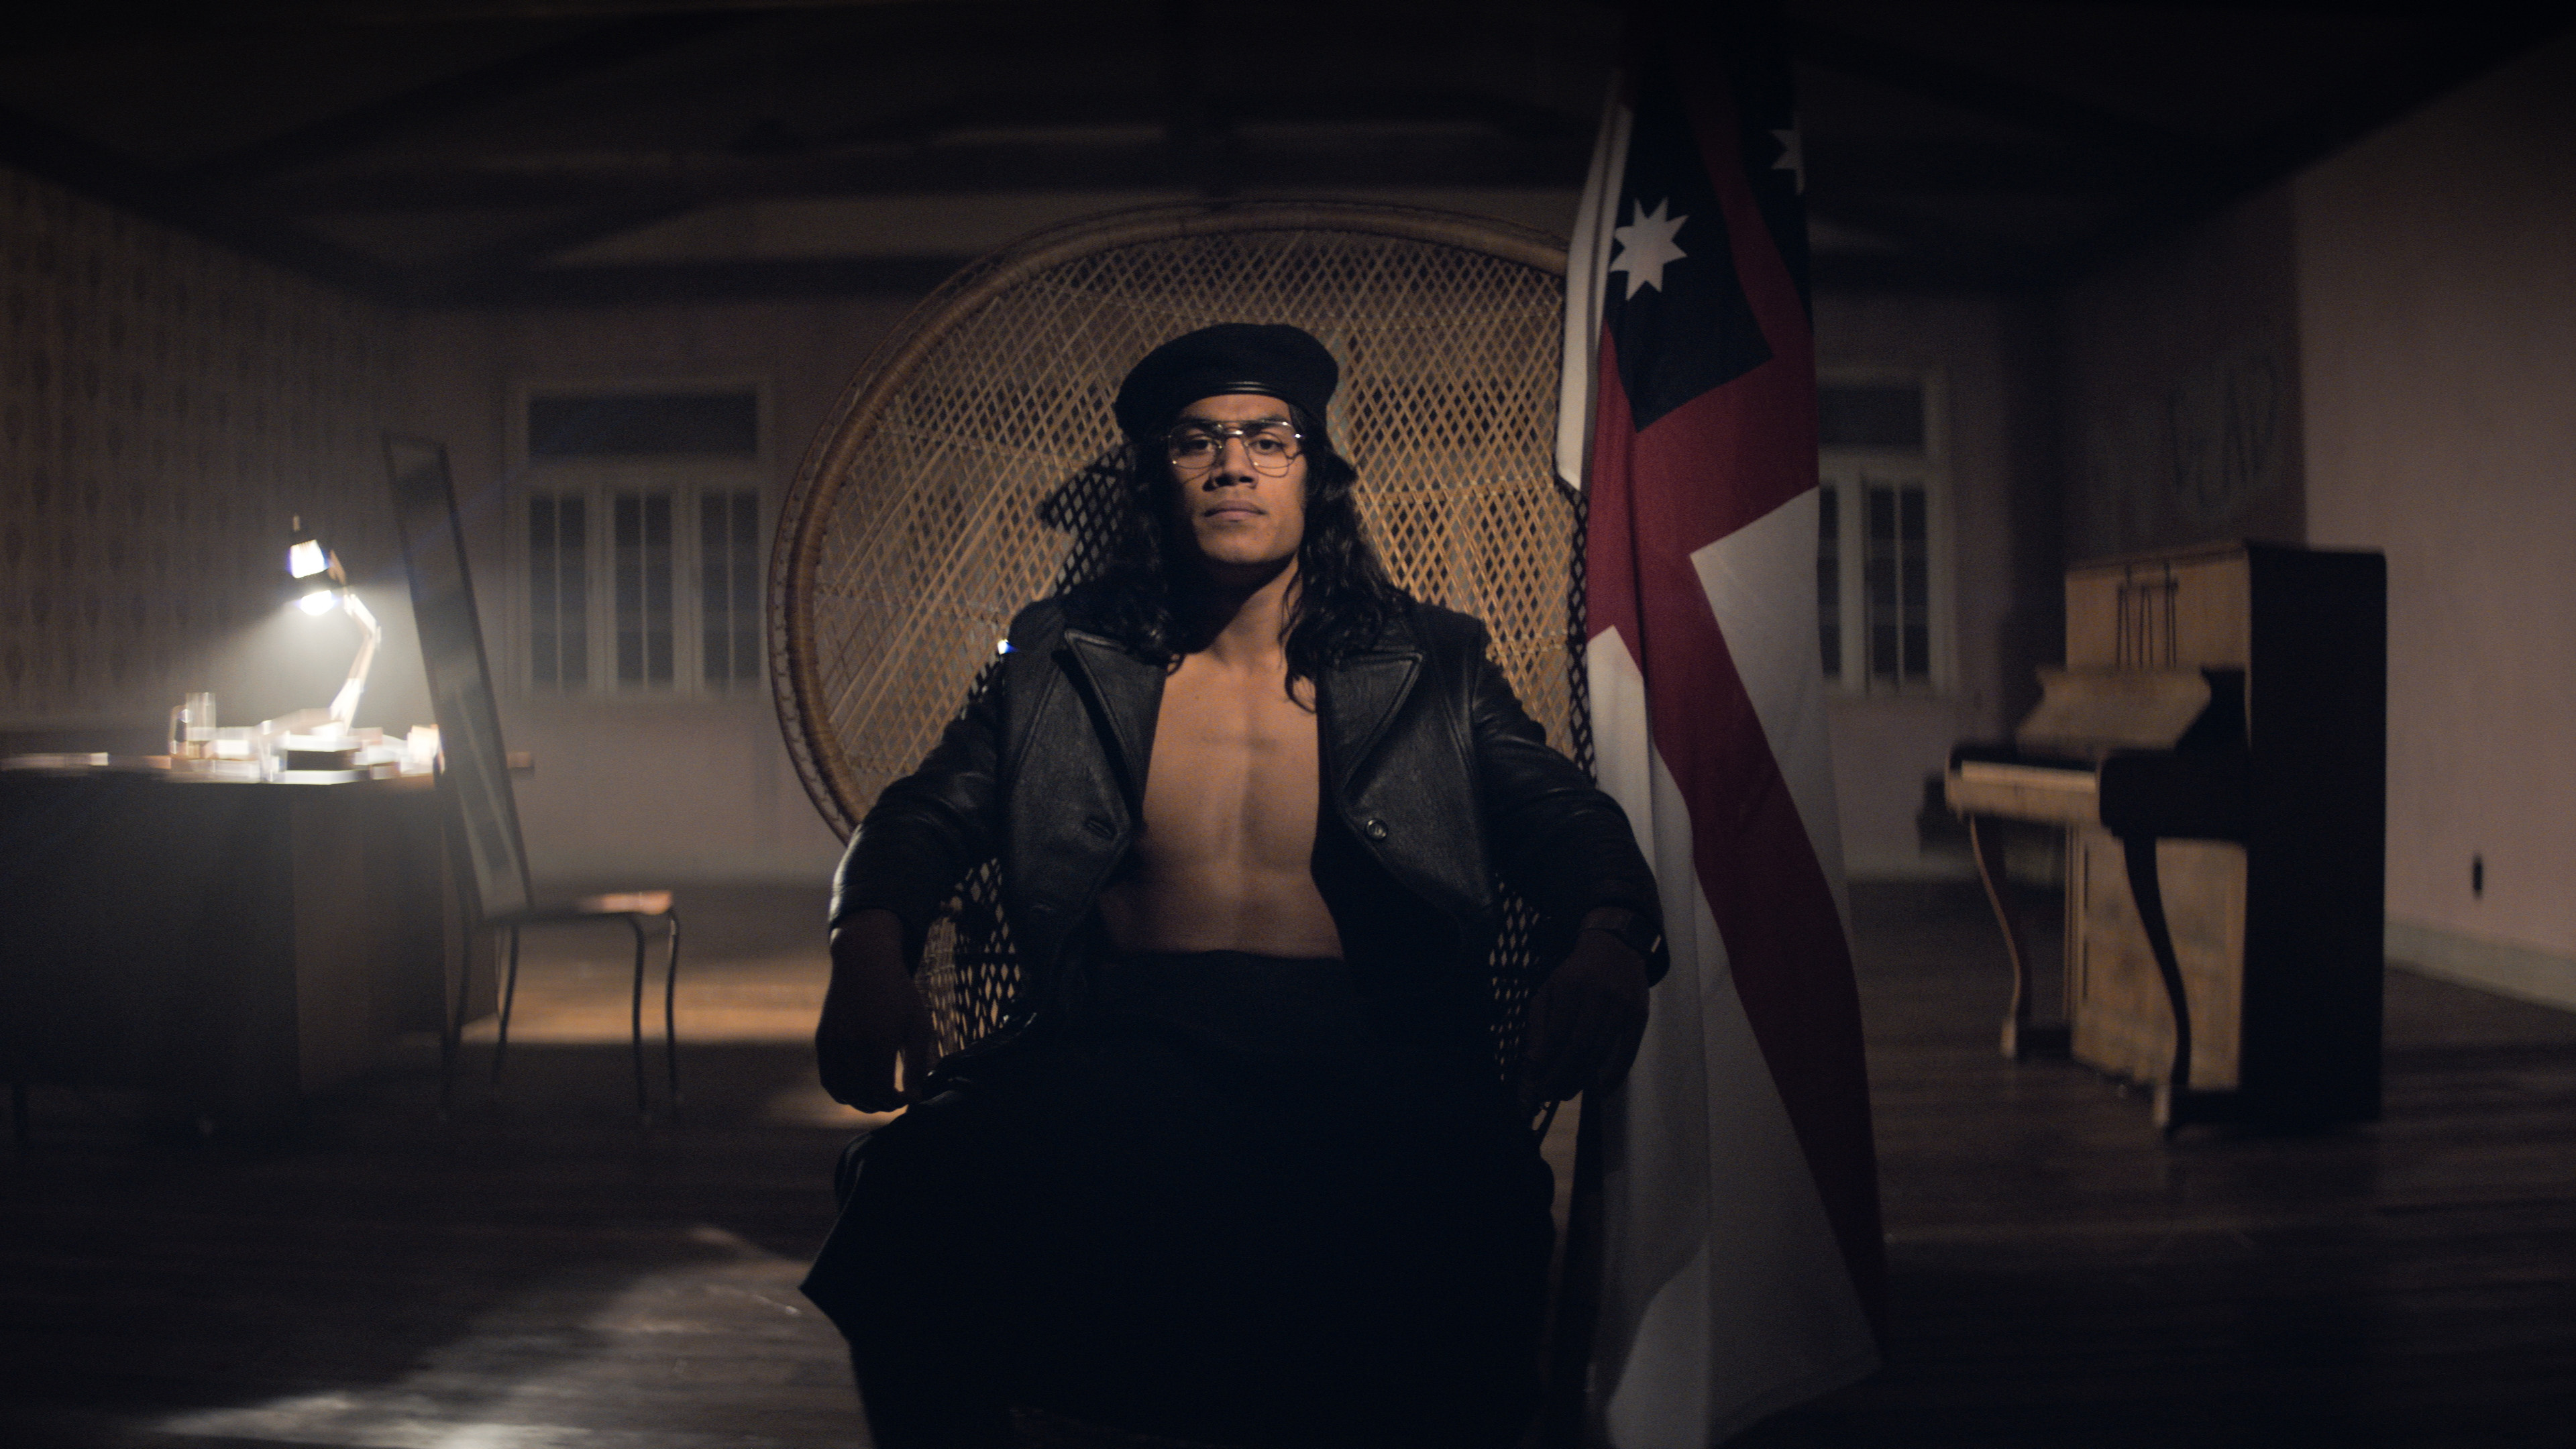 Seated on a wicker chair in a dimly-lit room, Dimitrius Schuster-Koloamatangi bears his muscular chest underneath a dark outfit with an open leather jacket. A flag leans beside him against the chair. Behind him from left to right is a desk with typical clutter and a lit office lamp, a wooden chair with a full-length mirror on top of it, and an upright piano.